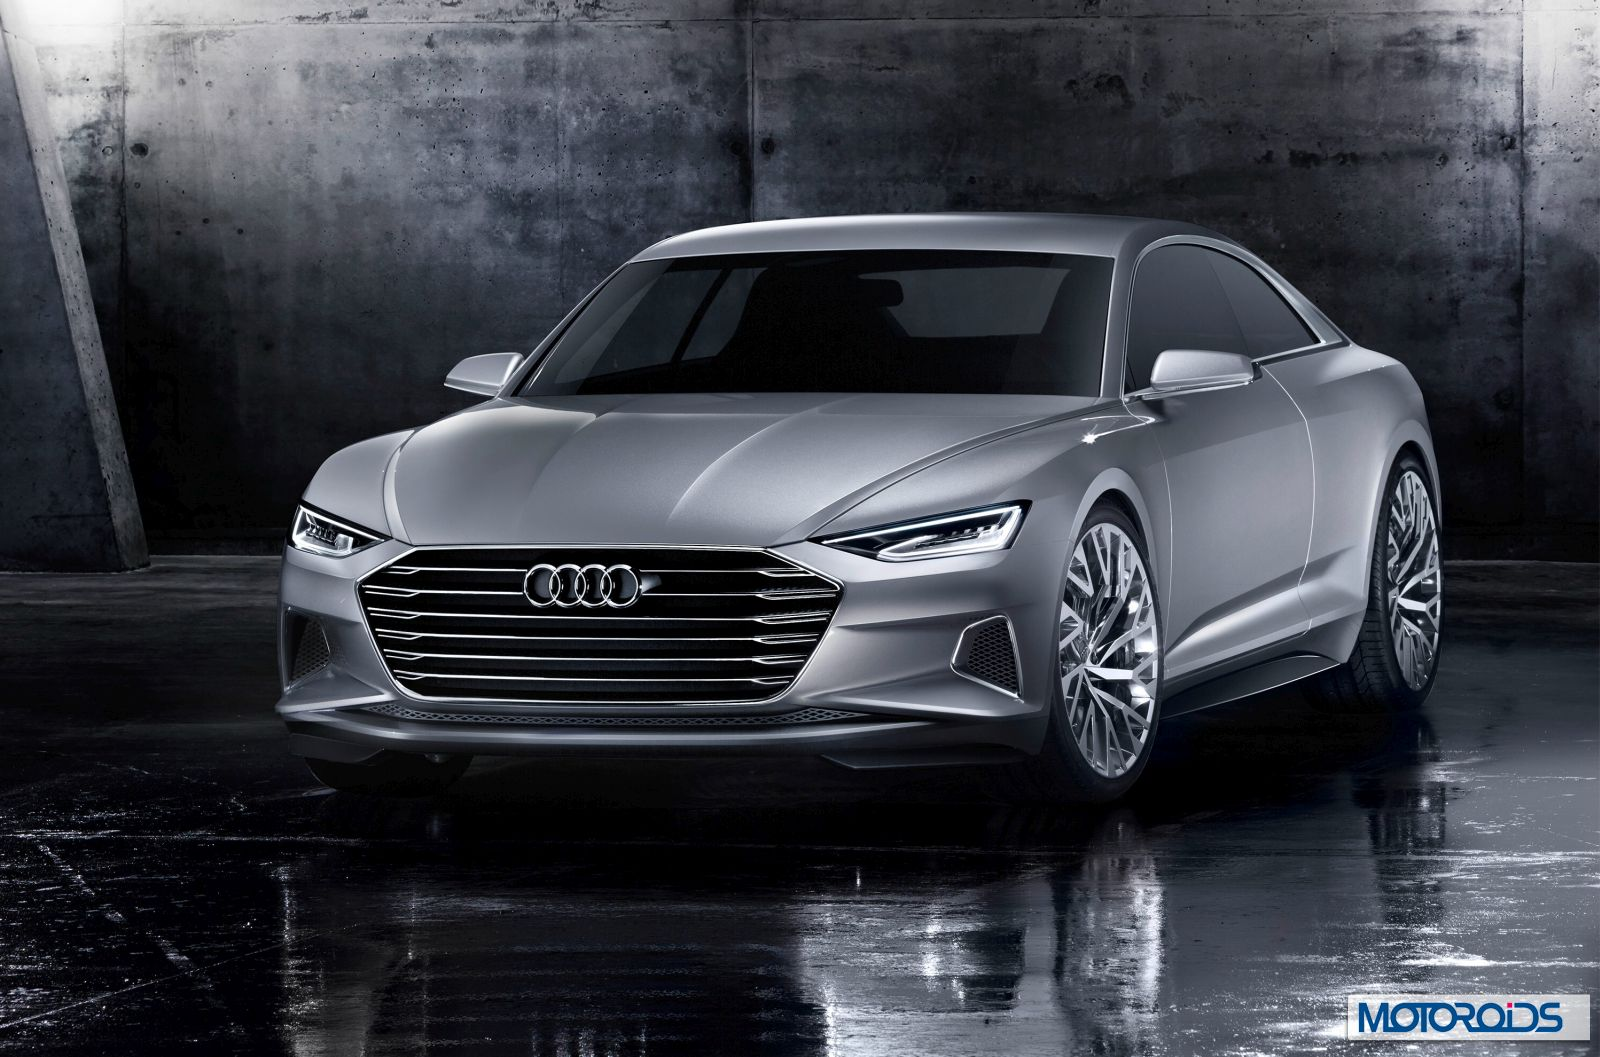 Video First Drive Of Audi A9 Prologue Concept On City Streets